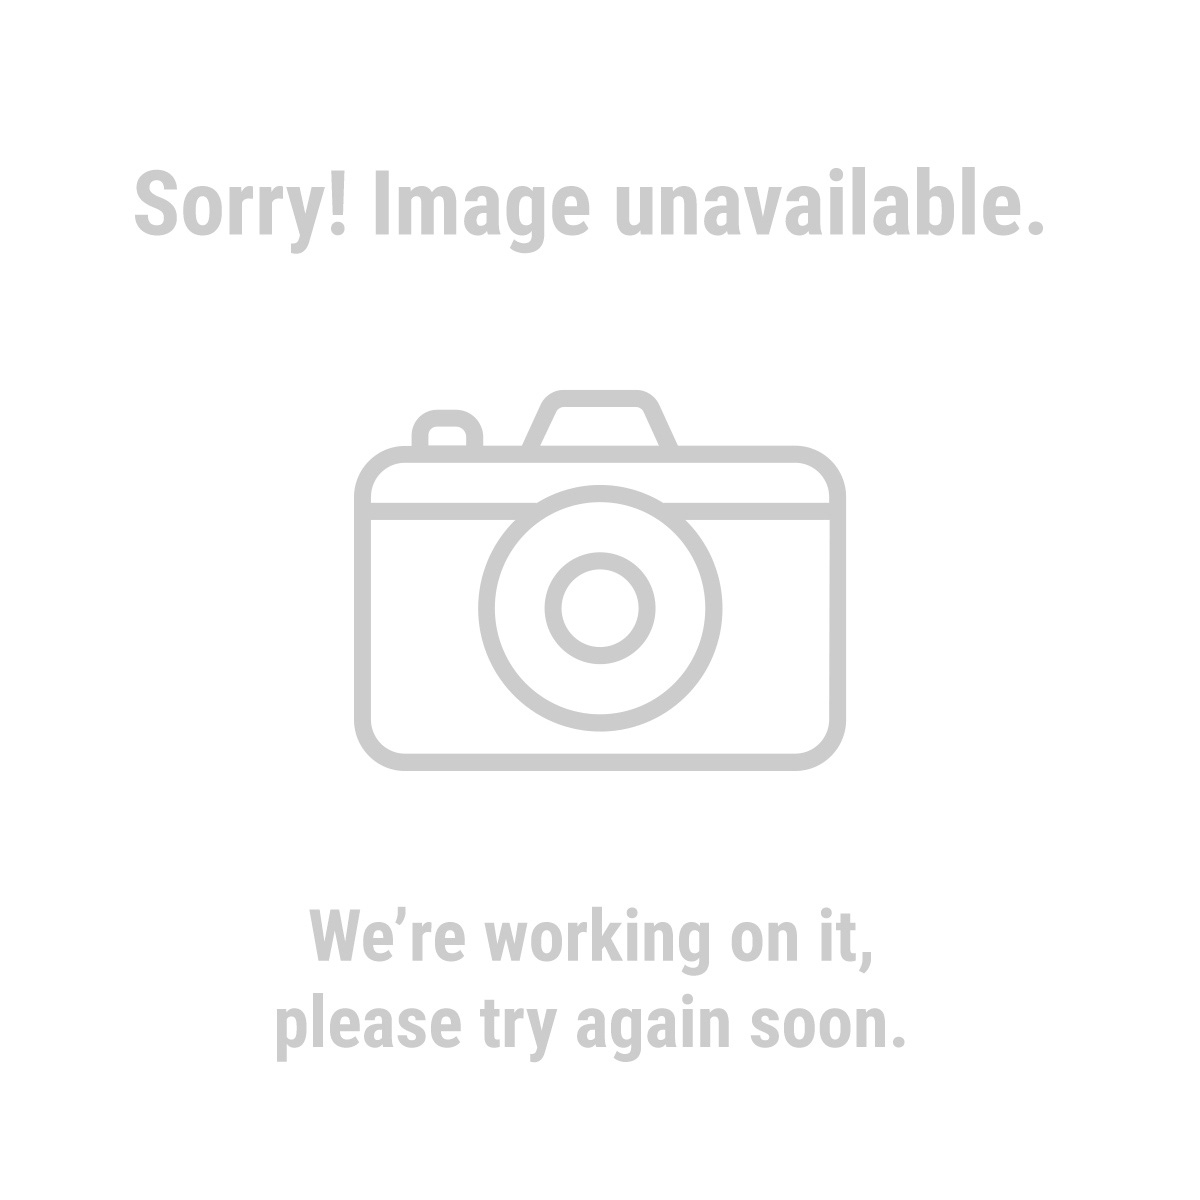 Pittsburgh 93051 Clamping Dial Indicator